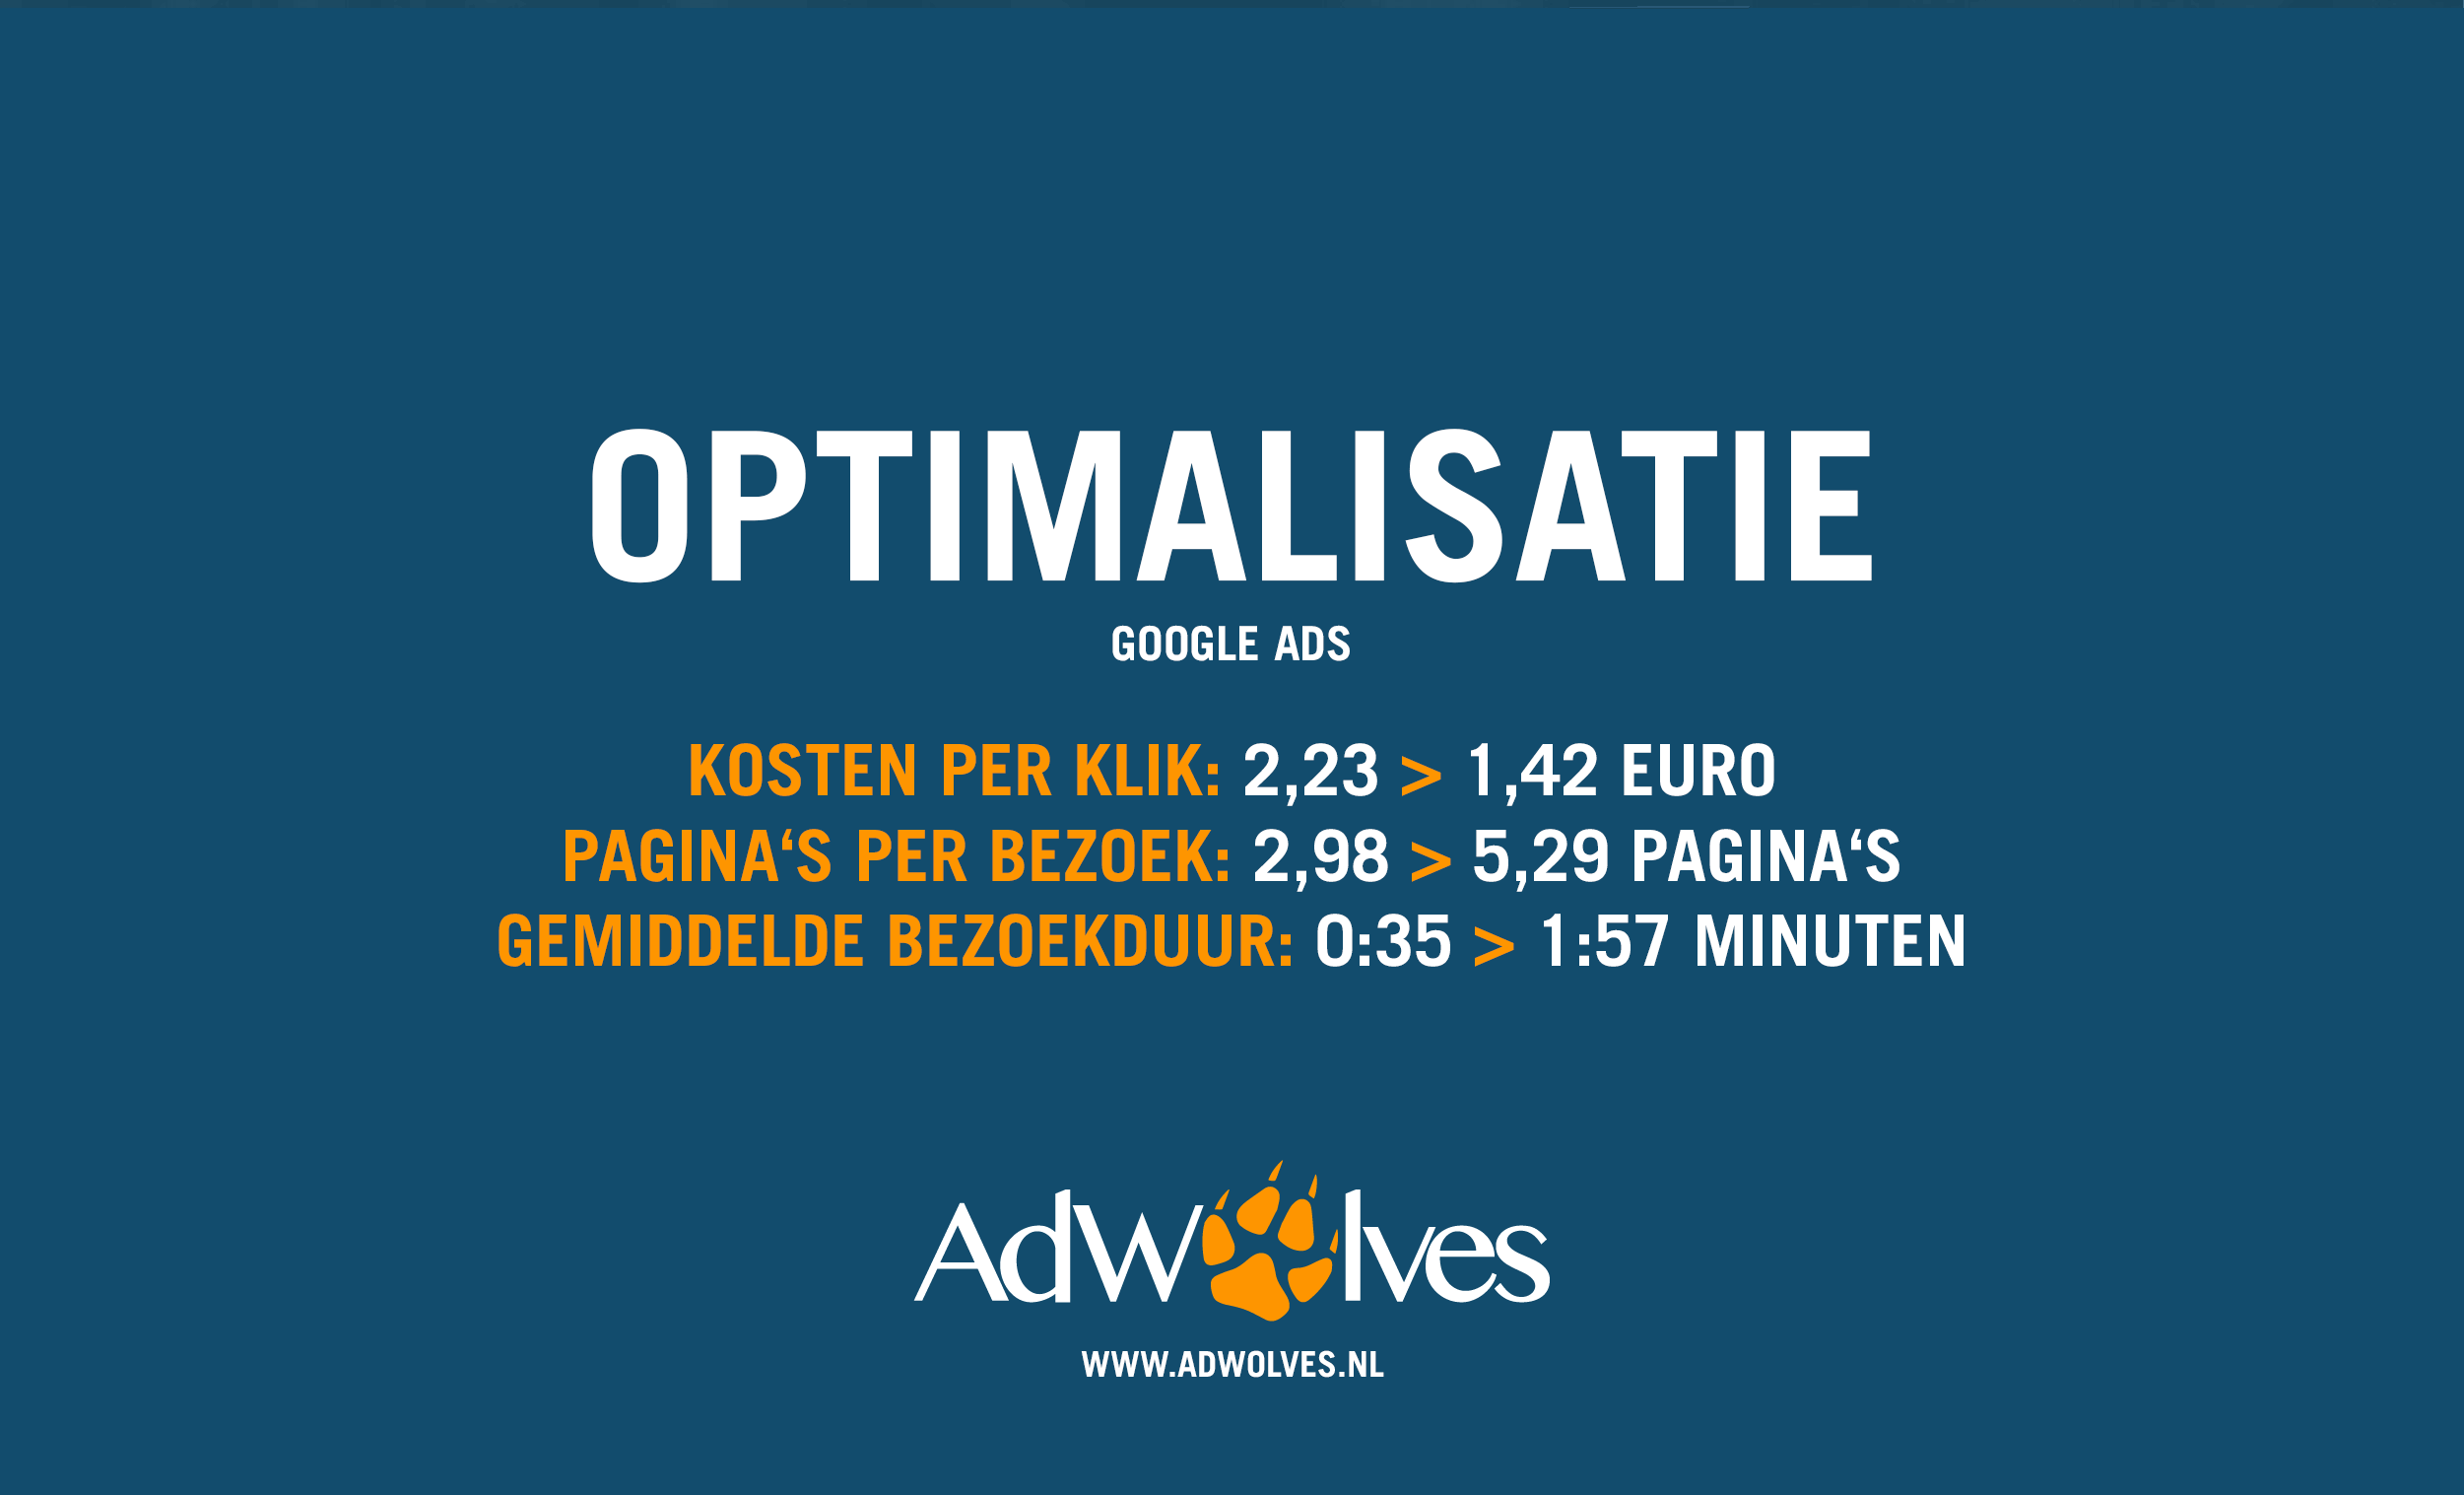 //adwolves.nl/wp-content/uploads/optimalisatie-search.png